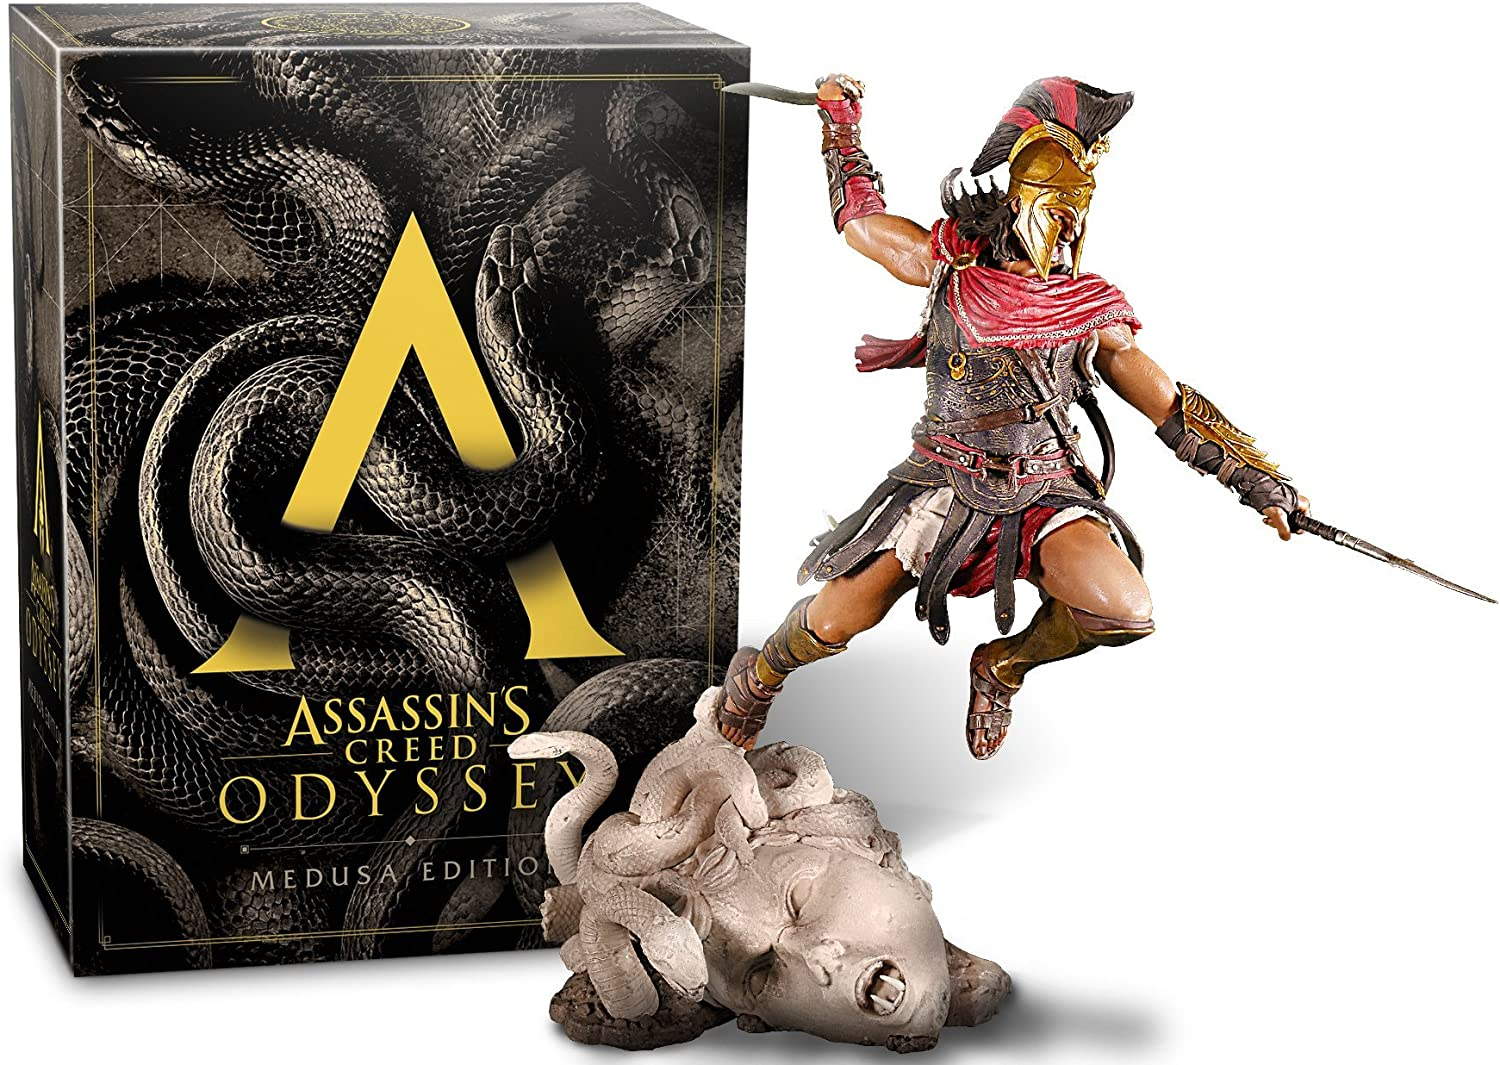 Assassins Creed Odyssey - Medusa Edition - PlayStation 4 [Importación alemana]: Amazon.es: Videojuegos